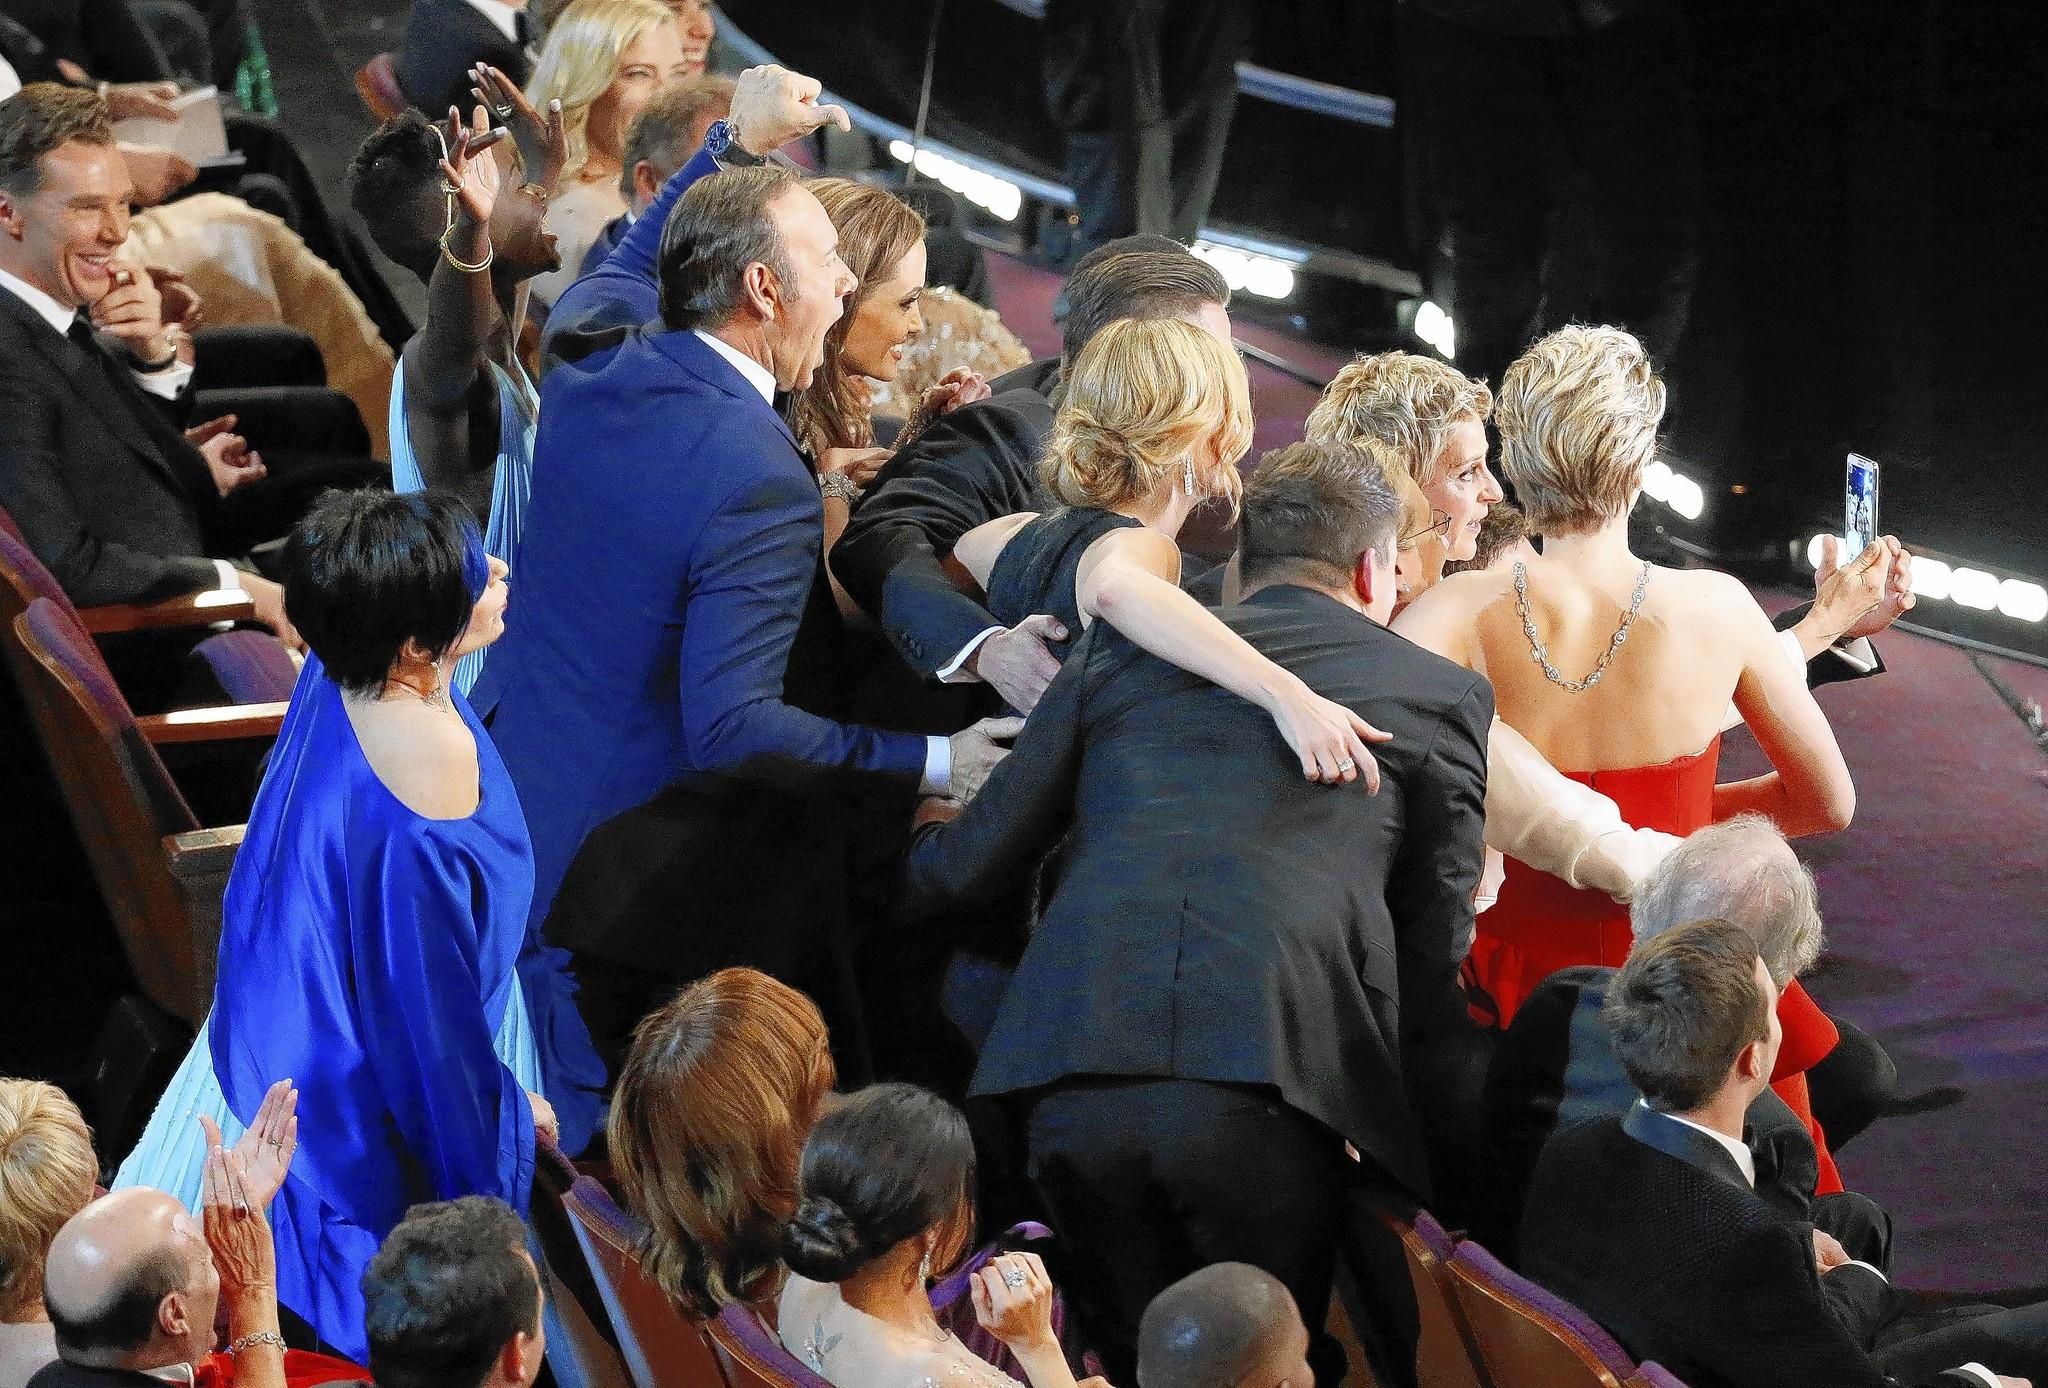 As she hosts the Academy Awards, Ellen DeGeneres gets a photo of herself and several other stars, using a Samsung smartphone.